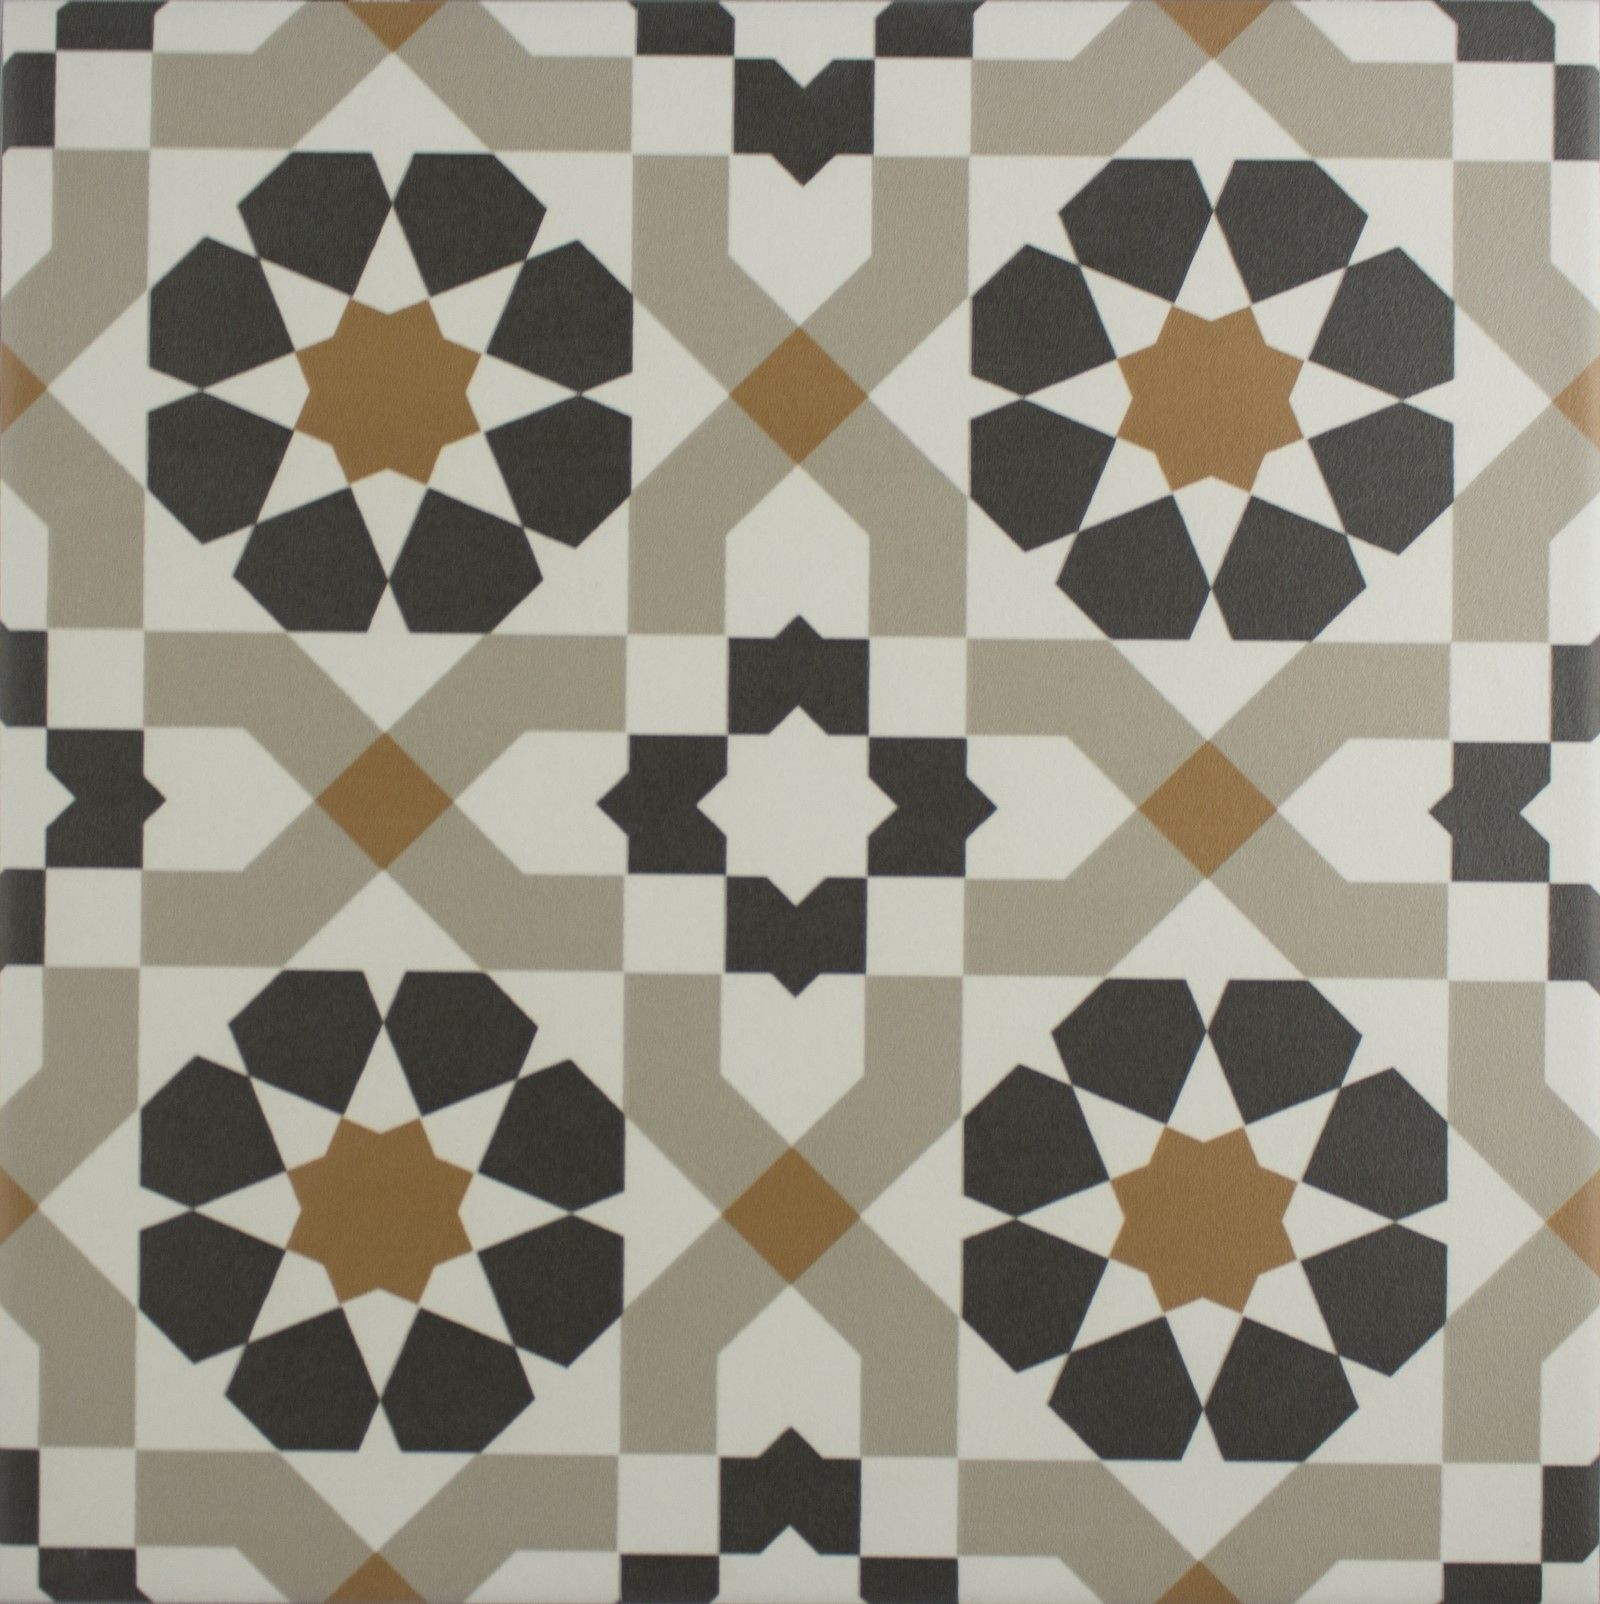 Marrakech Catarina Copper 4 Pattern Floor Tile | Marrakech ...